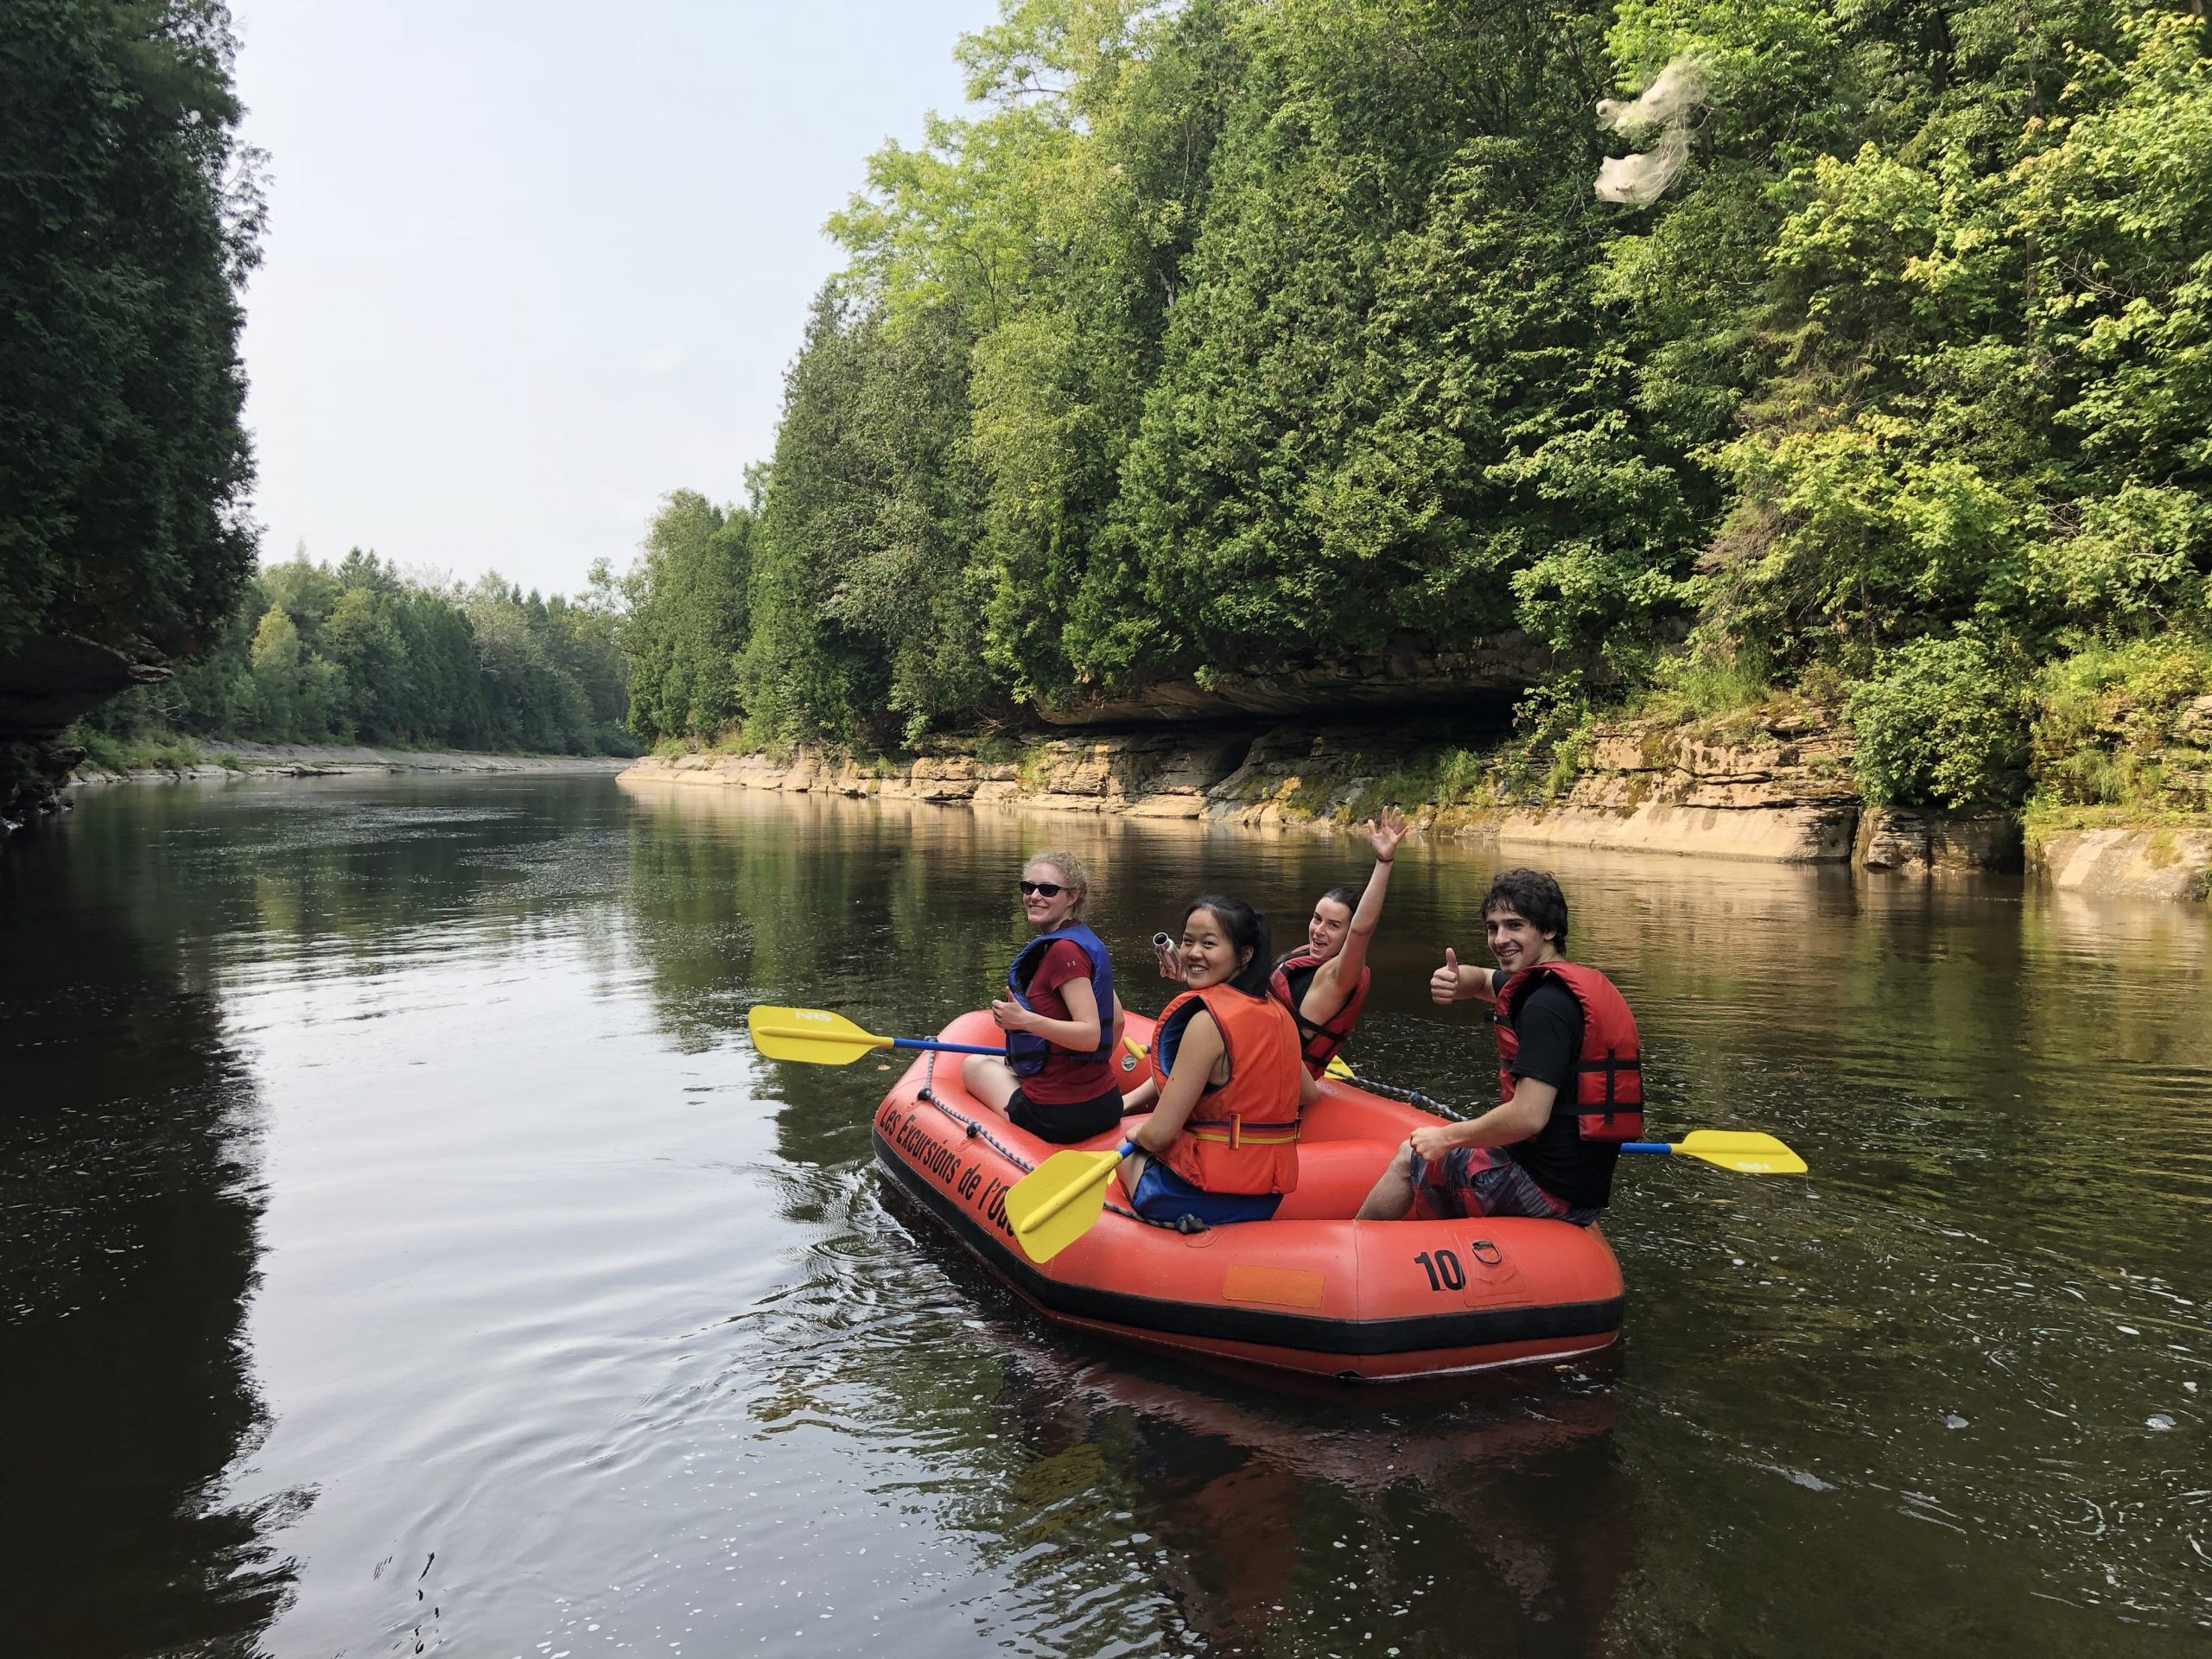 Rafting with interns: thank you